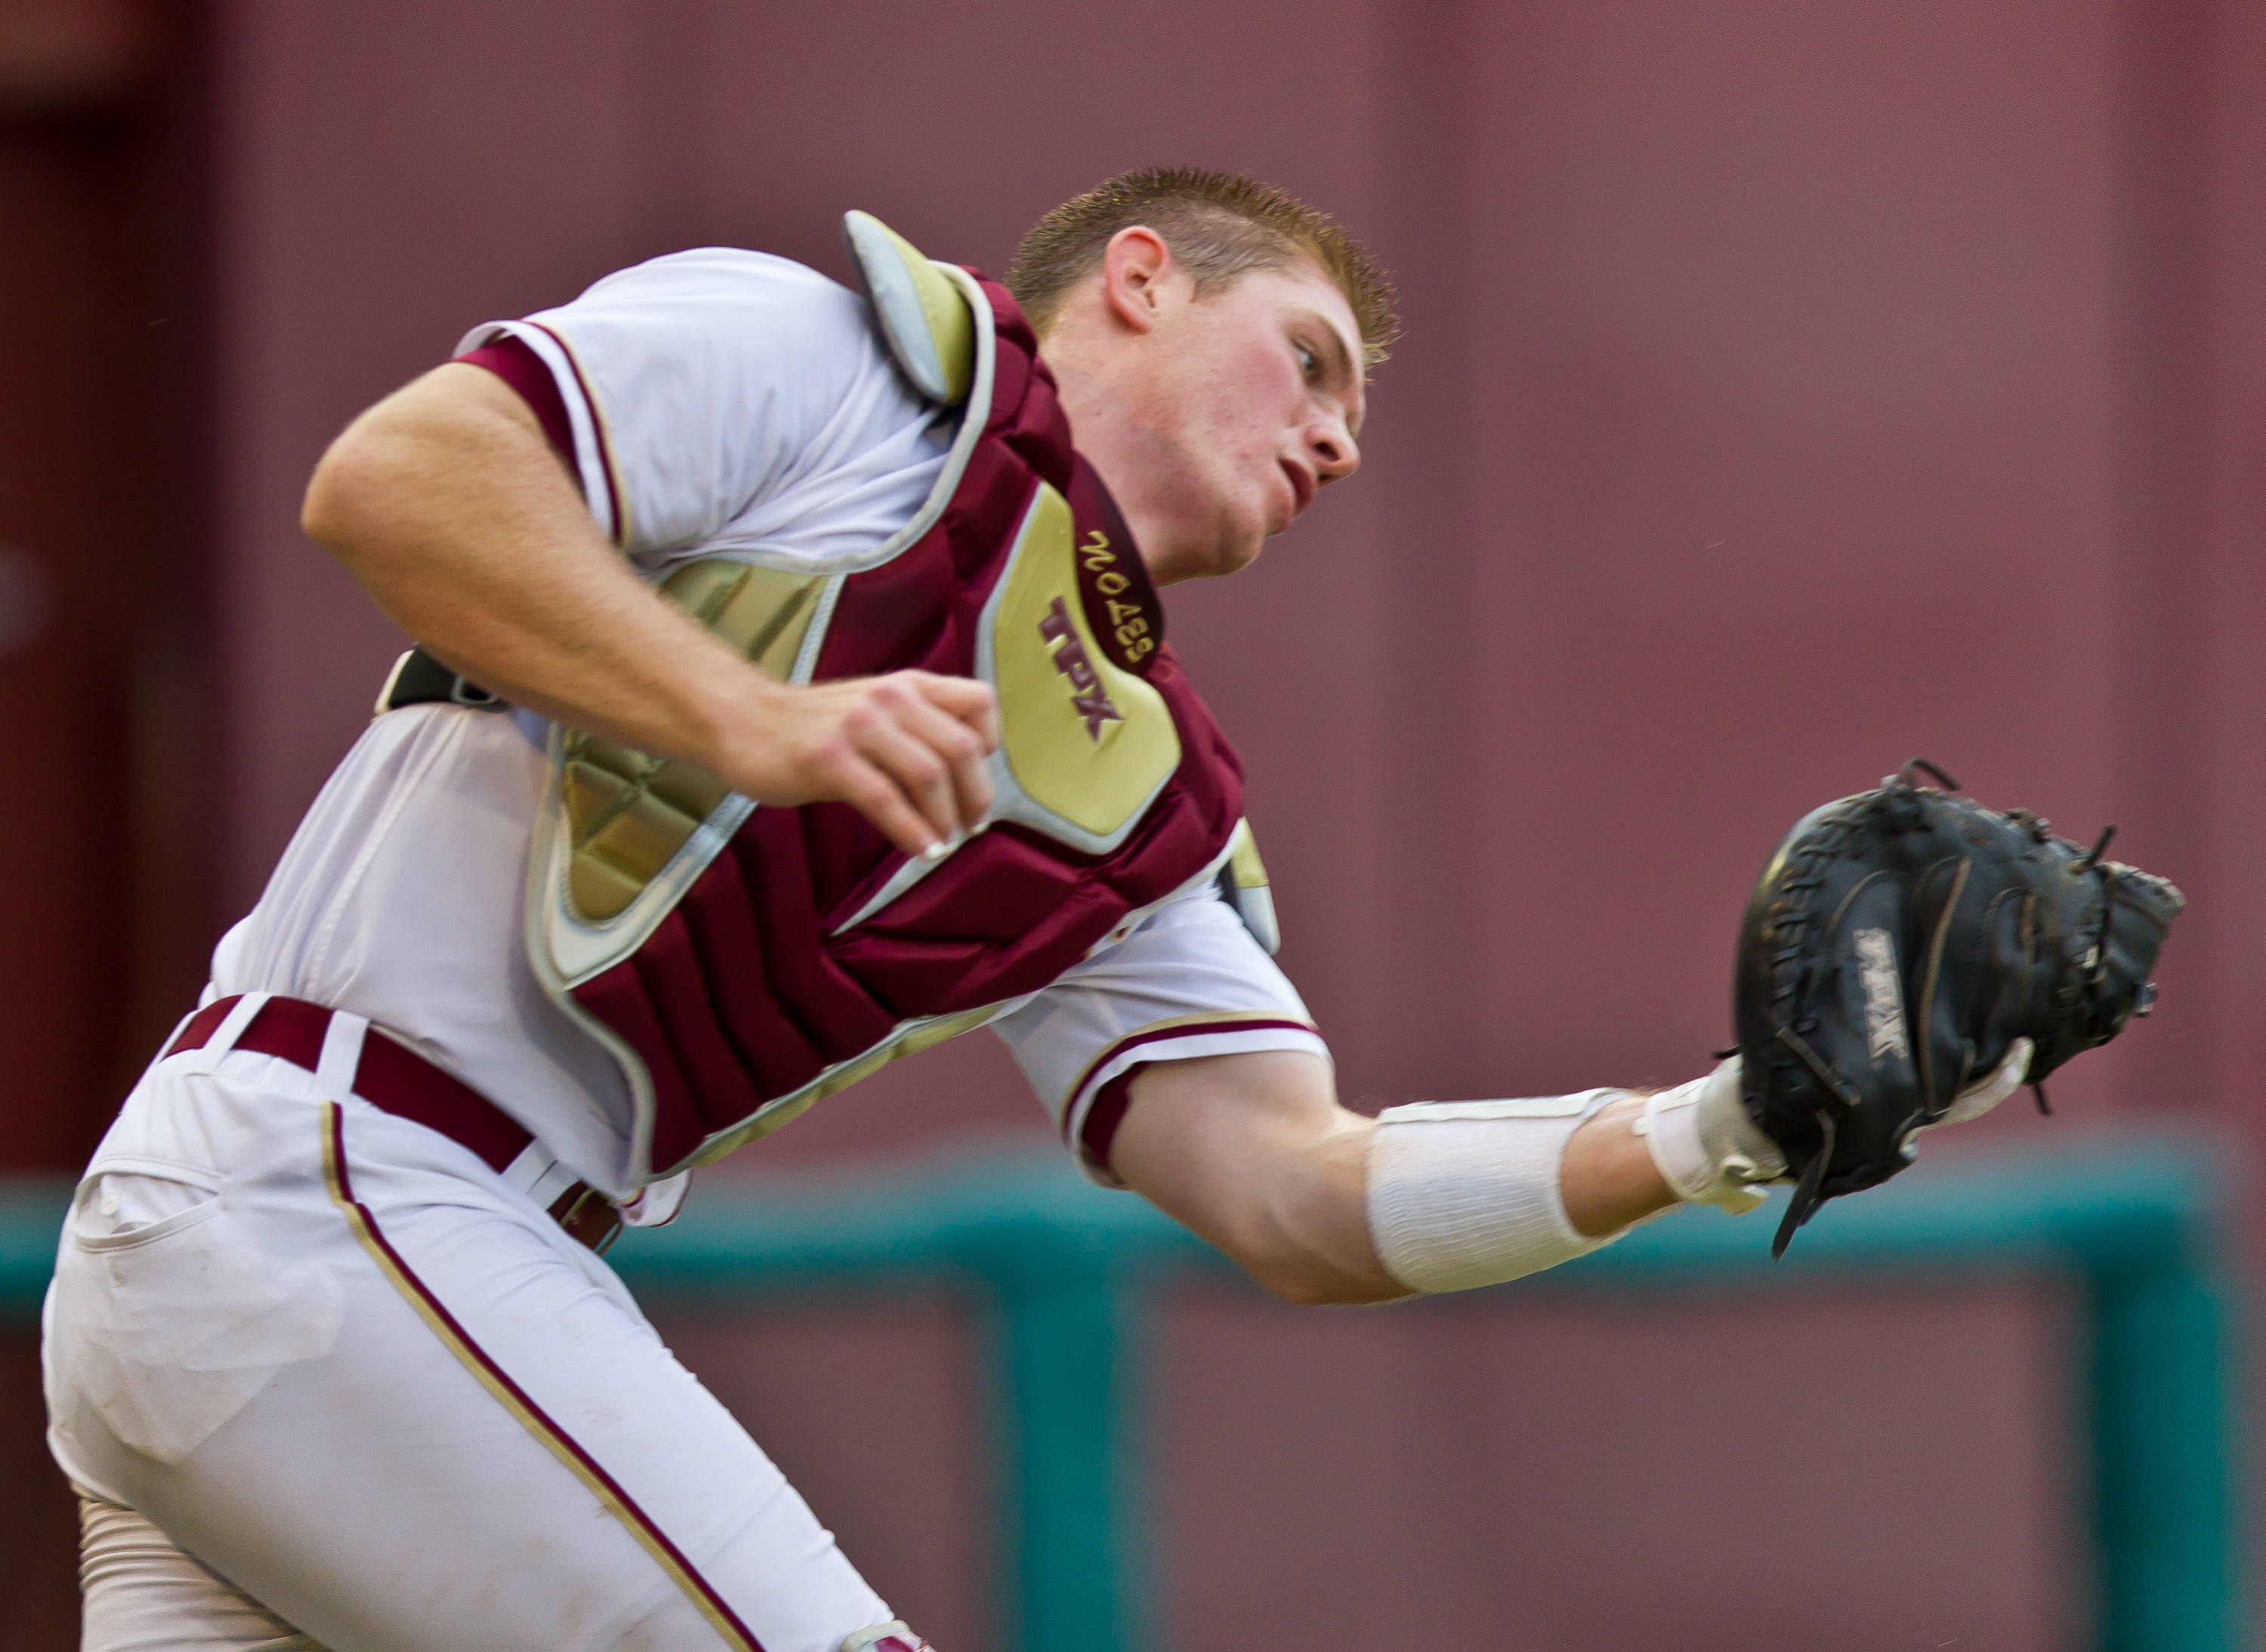 Stephen McGee makes an outstanding catch in front of the pitcher's mound.